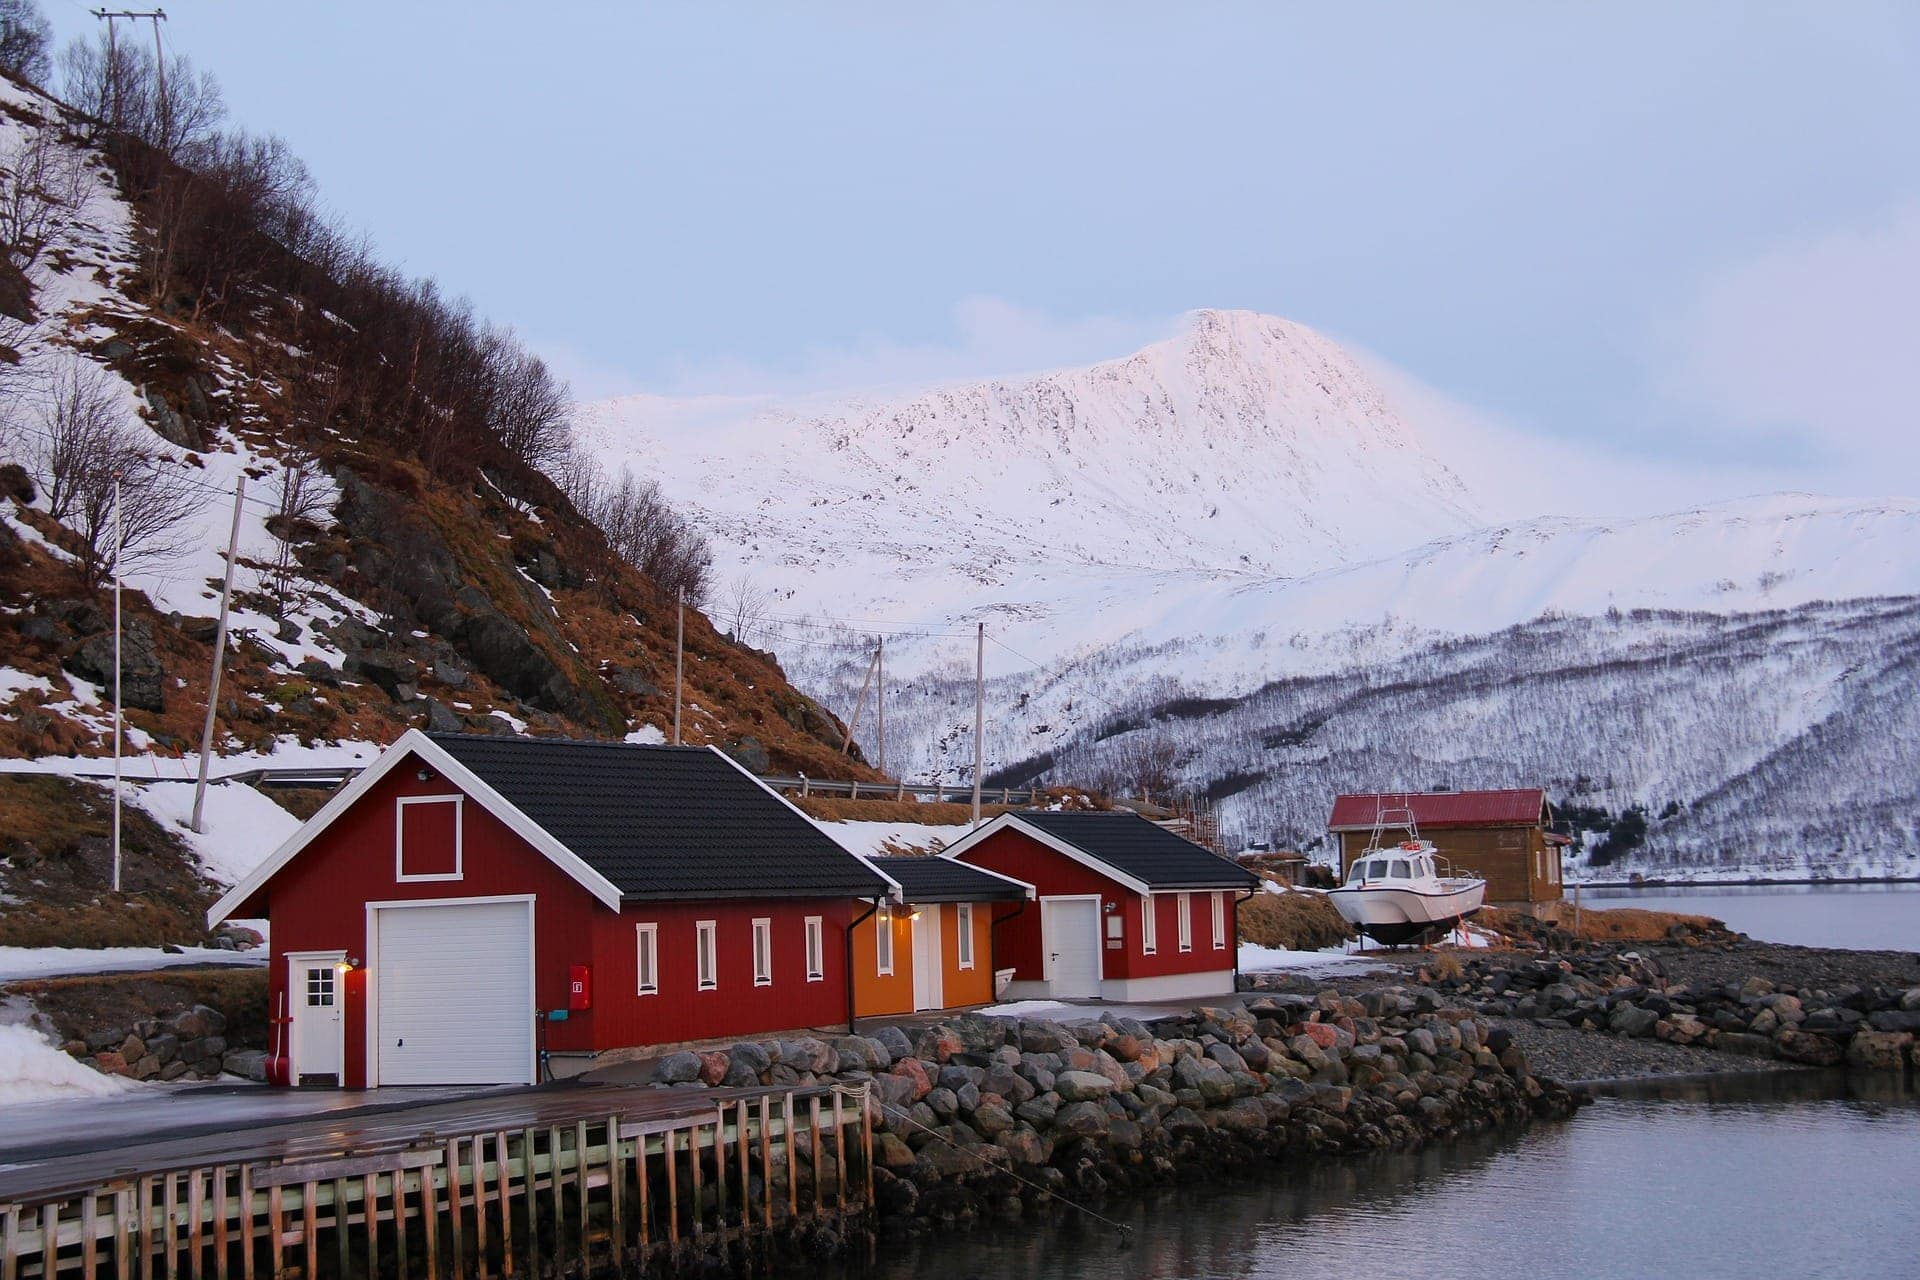 kvaloya norway colorful homes mountain lake lust 'till dawn www.fromlusttilldawn.com